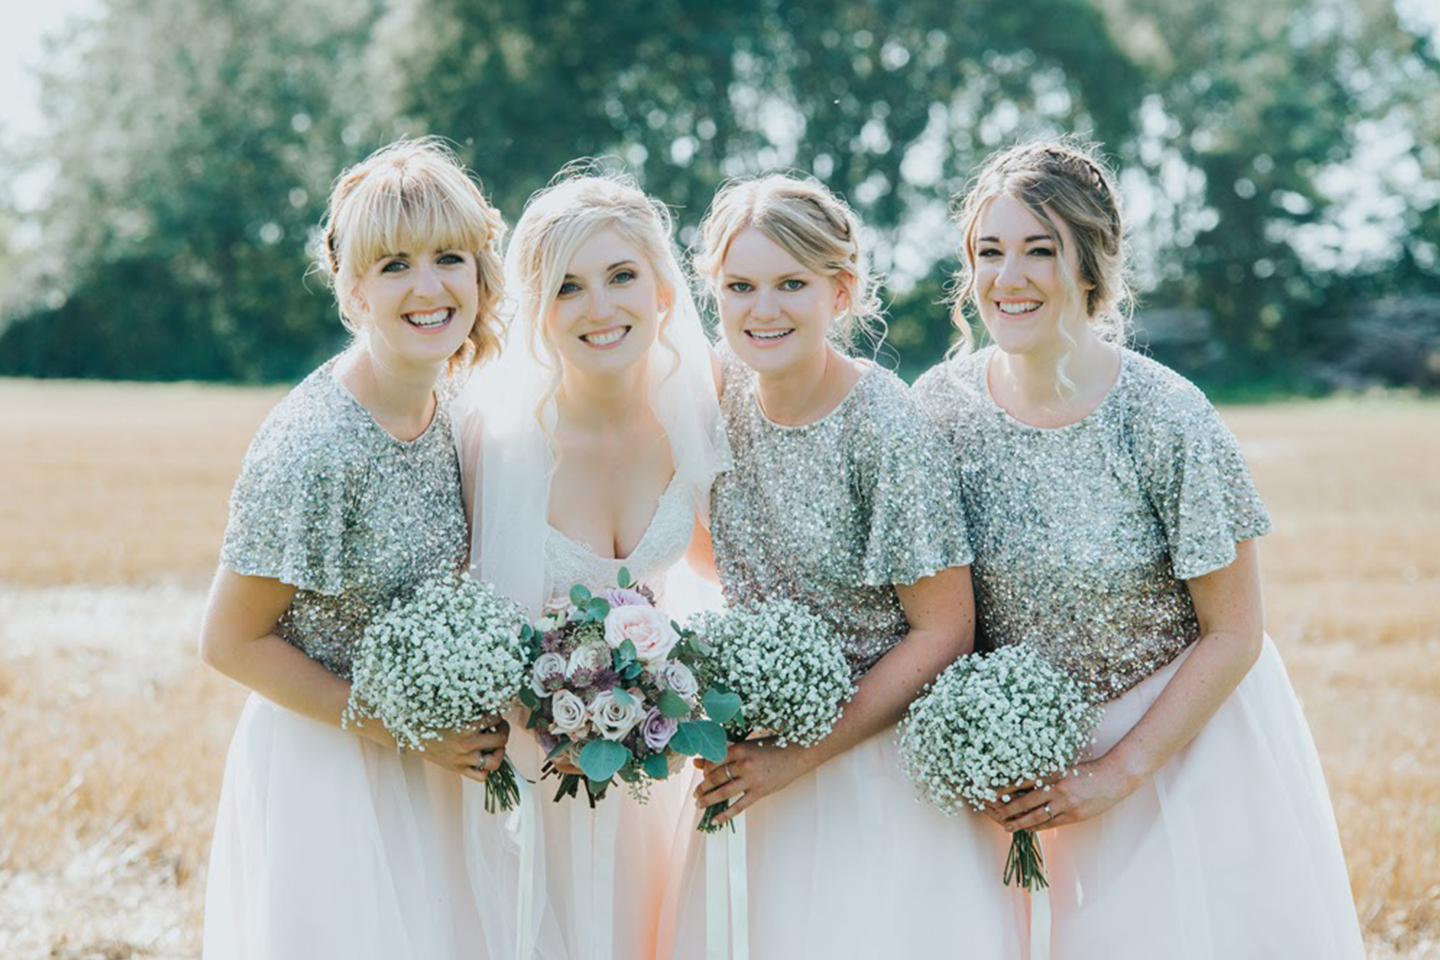 Bridesmaids wore sequin bridesmaids dresses for this glamourous wedding at Bassmead Manor Barns